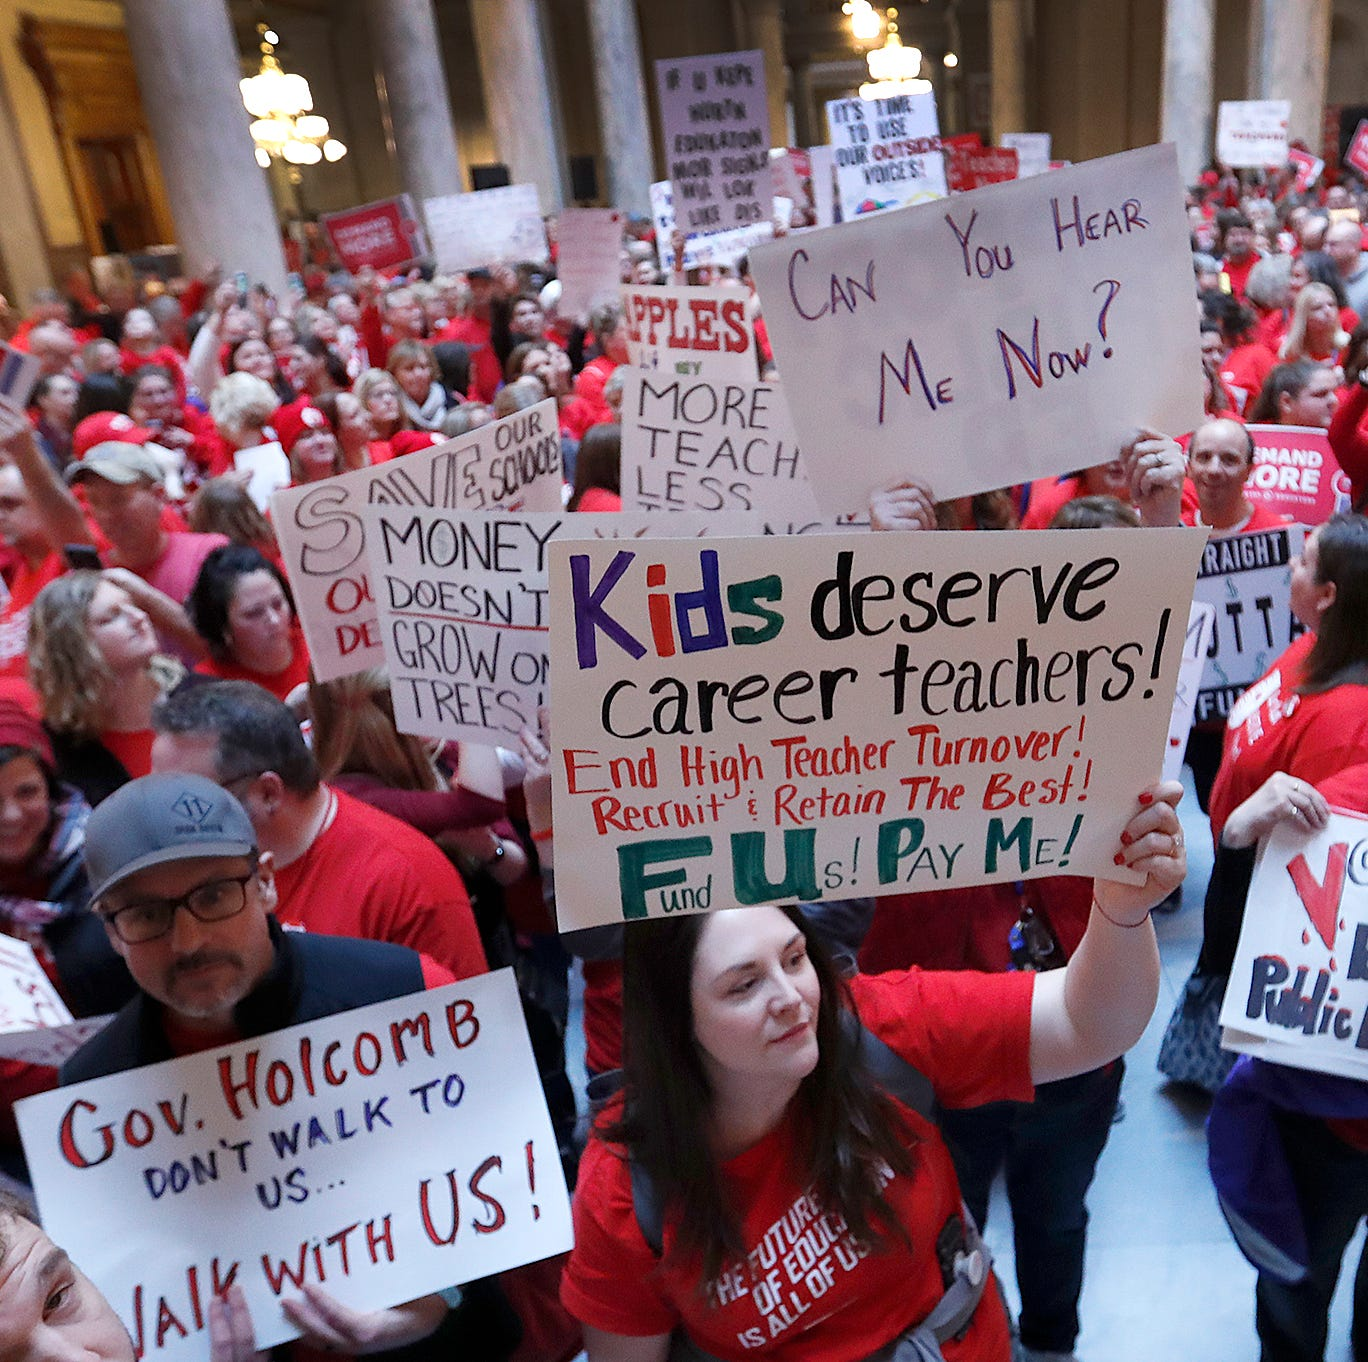 Union president: Indiana is falling behind the nation in school funding, teacher pay